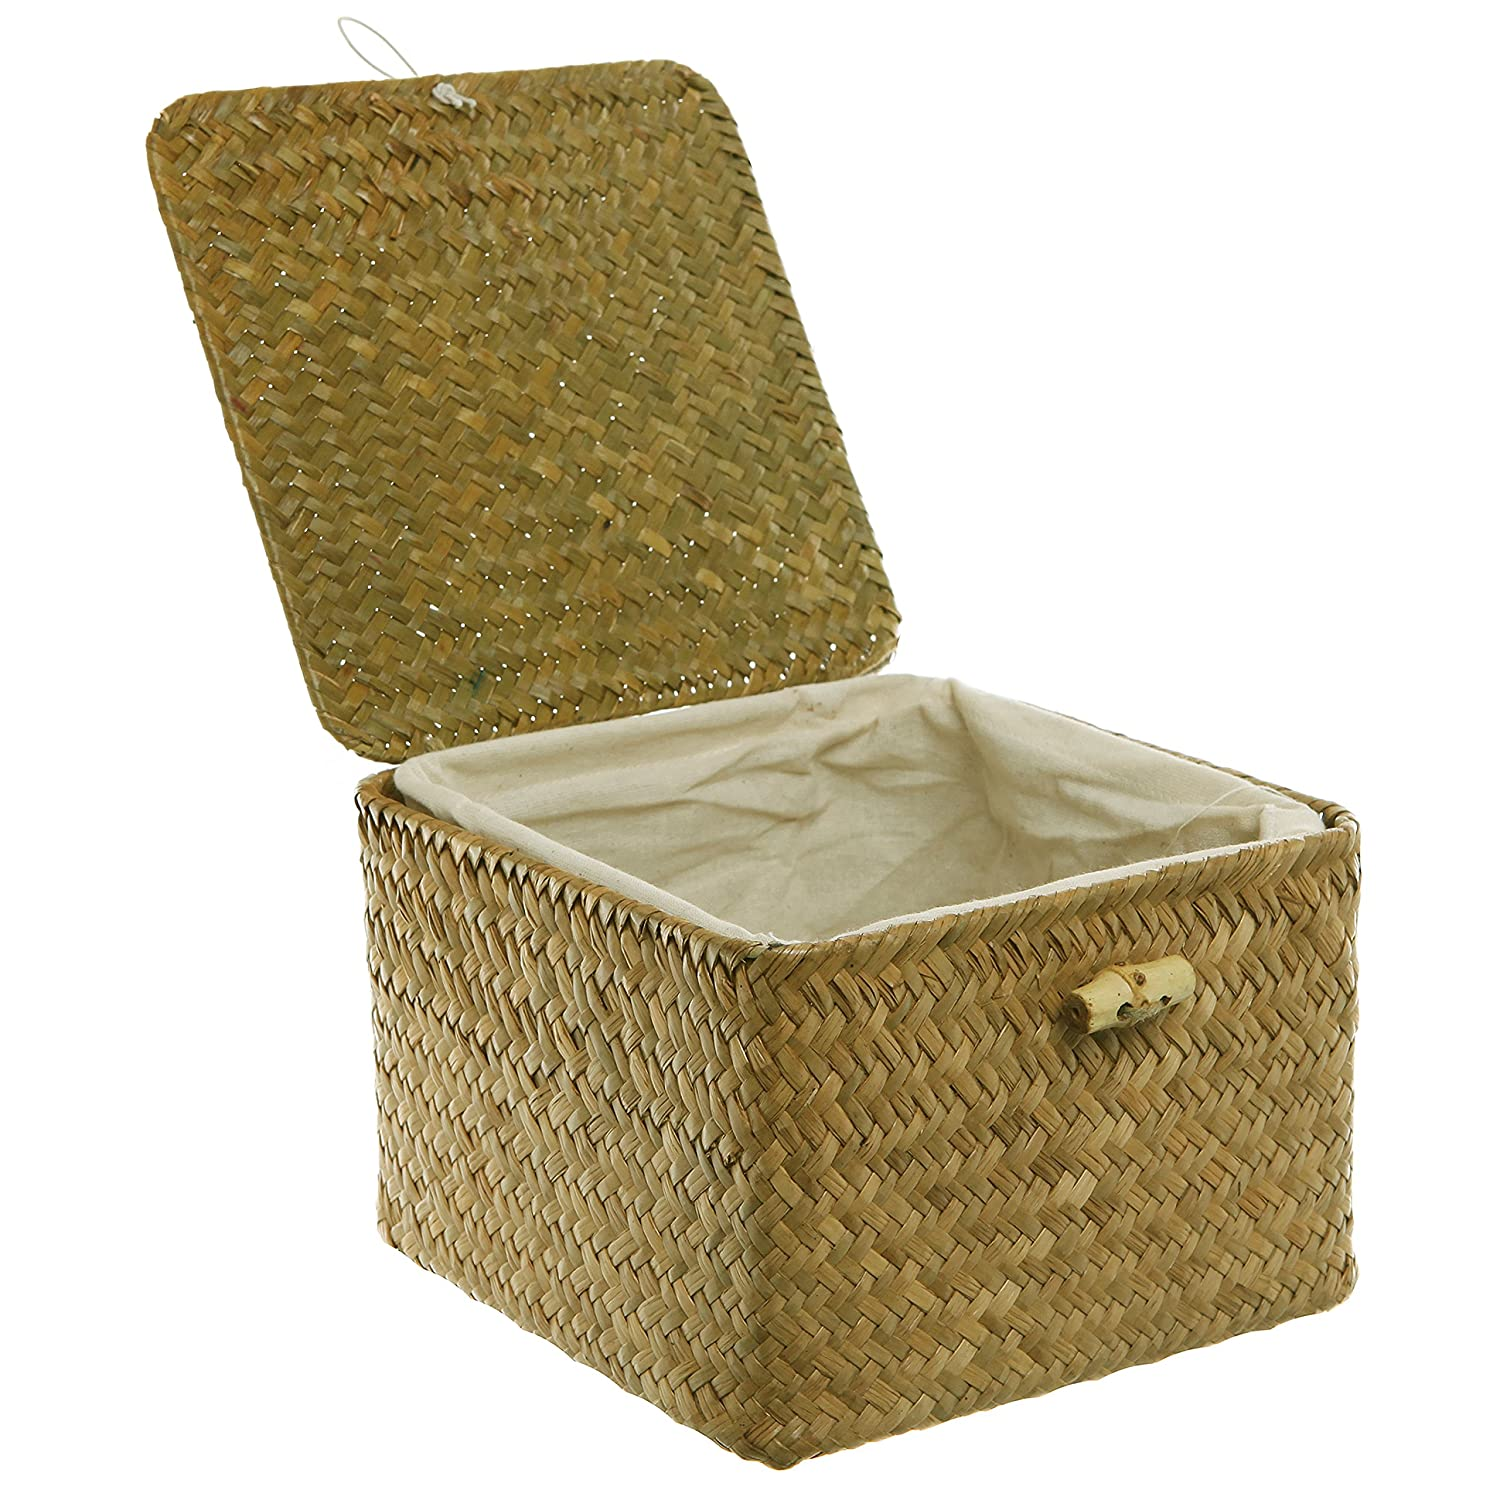 Amazon.com: Brown Hand Woven Rattan Home Storage Basket / Decorative Box  With Lid U0026 Removable Fabric Lined Interior: Home U0026 Kitchen